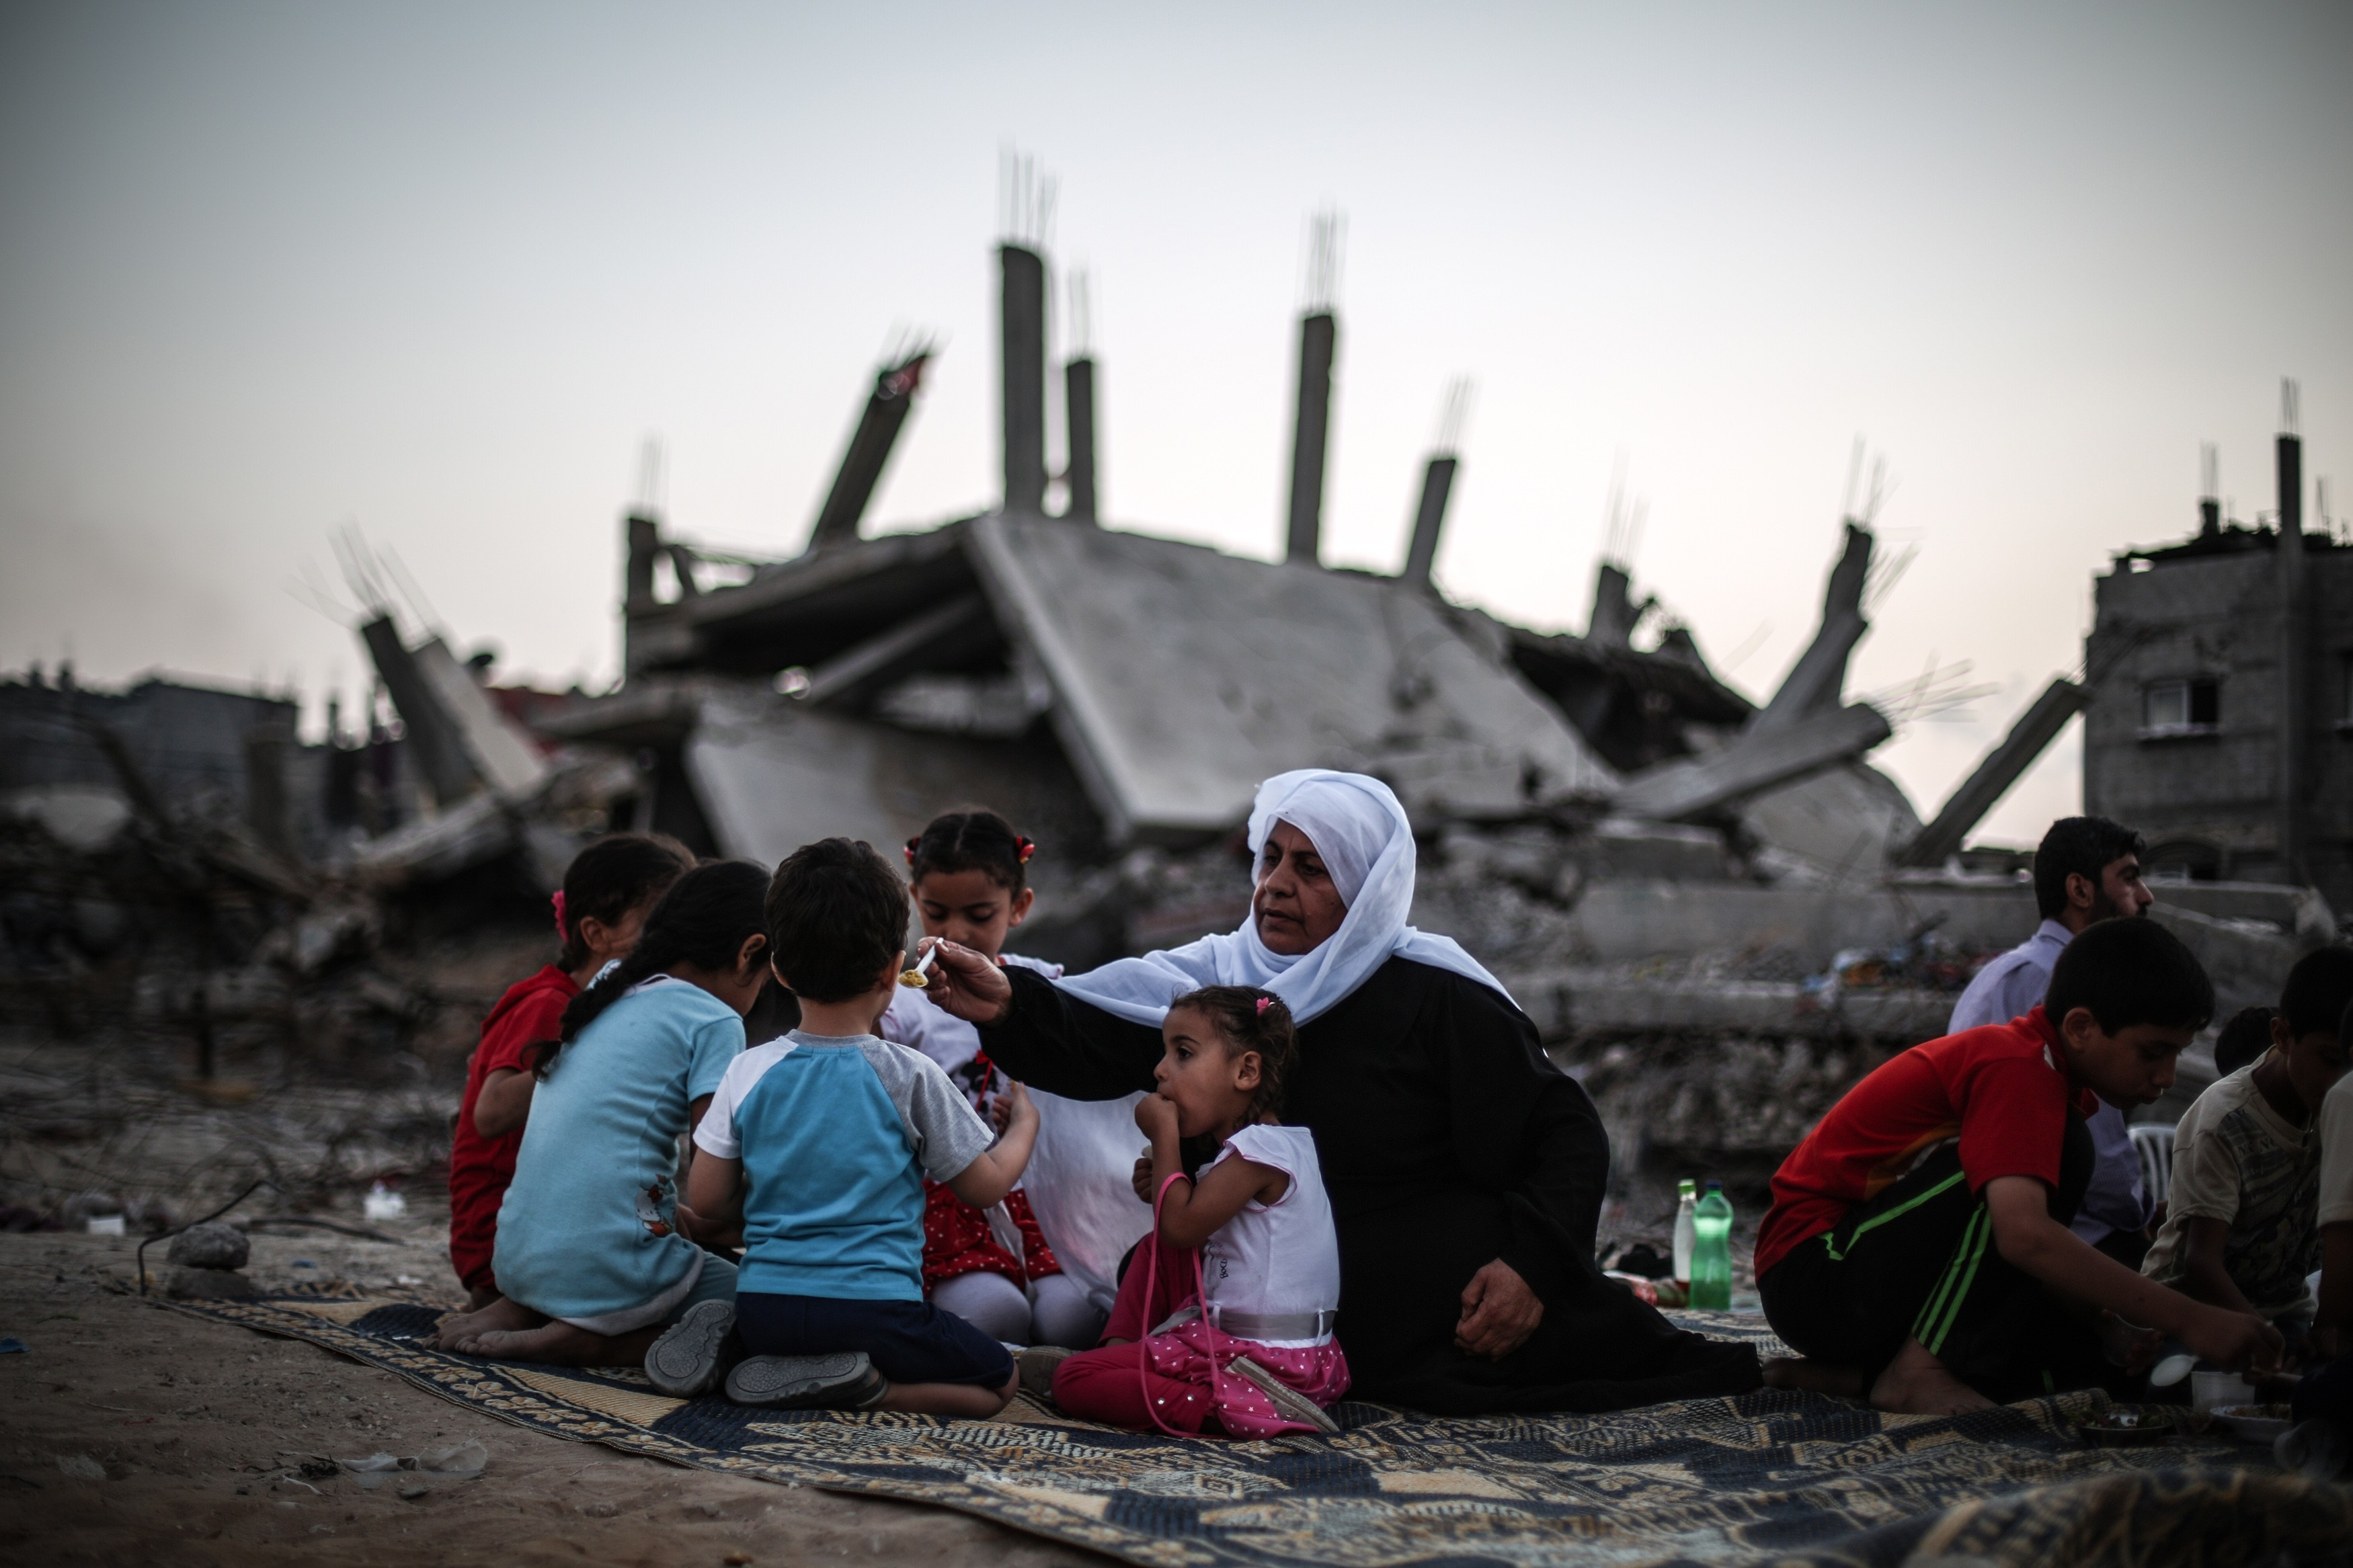 Sderot's Mizraḥi residents gather at dusk to watch bombings of Gaza Strip. Photo credit: Oren Ziv/ActiveStills, 2014.